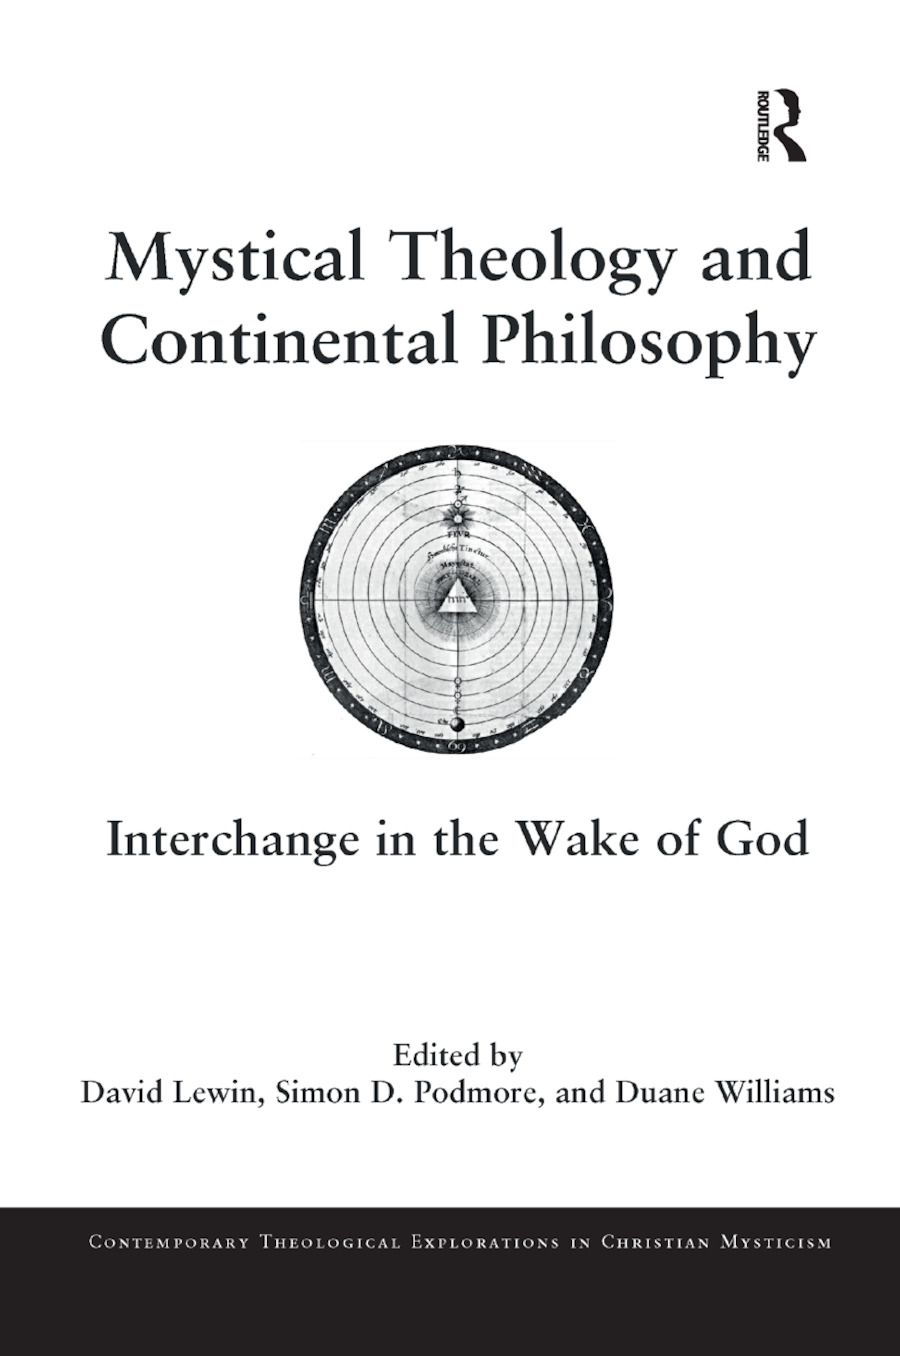 Mystical Theology and Continental Philosophy